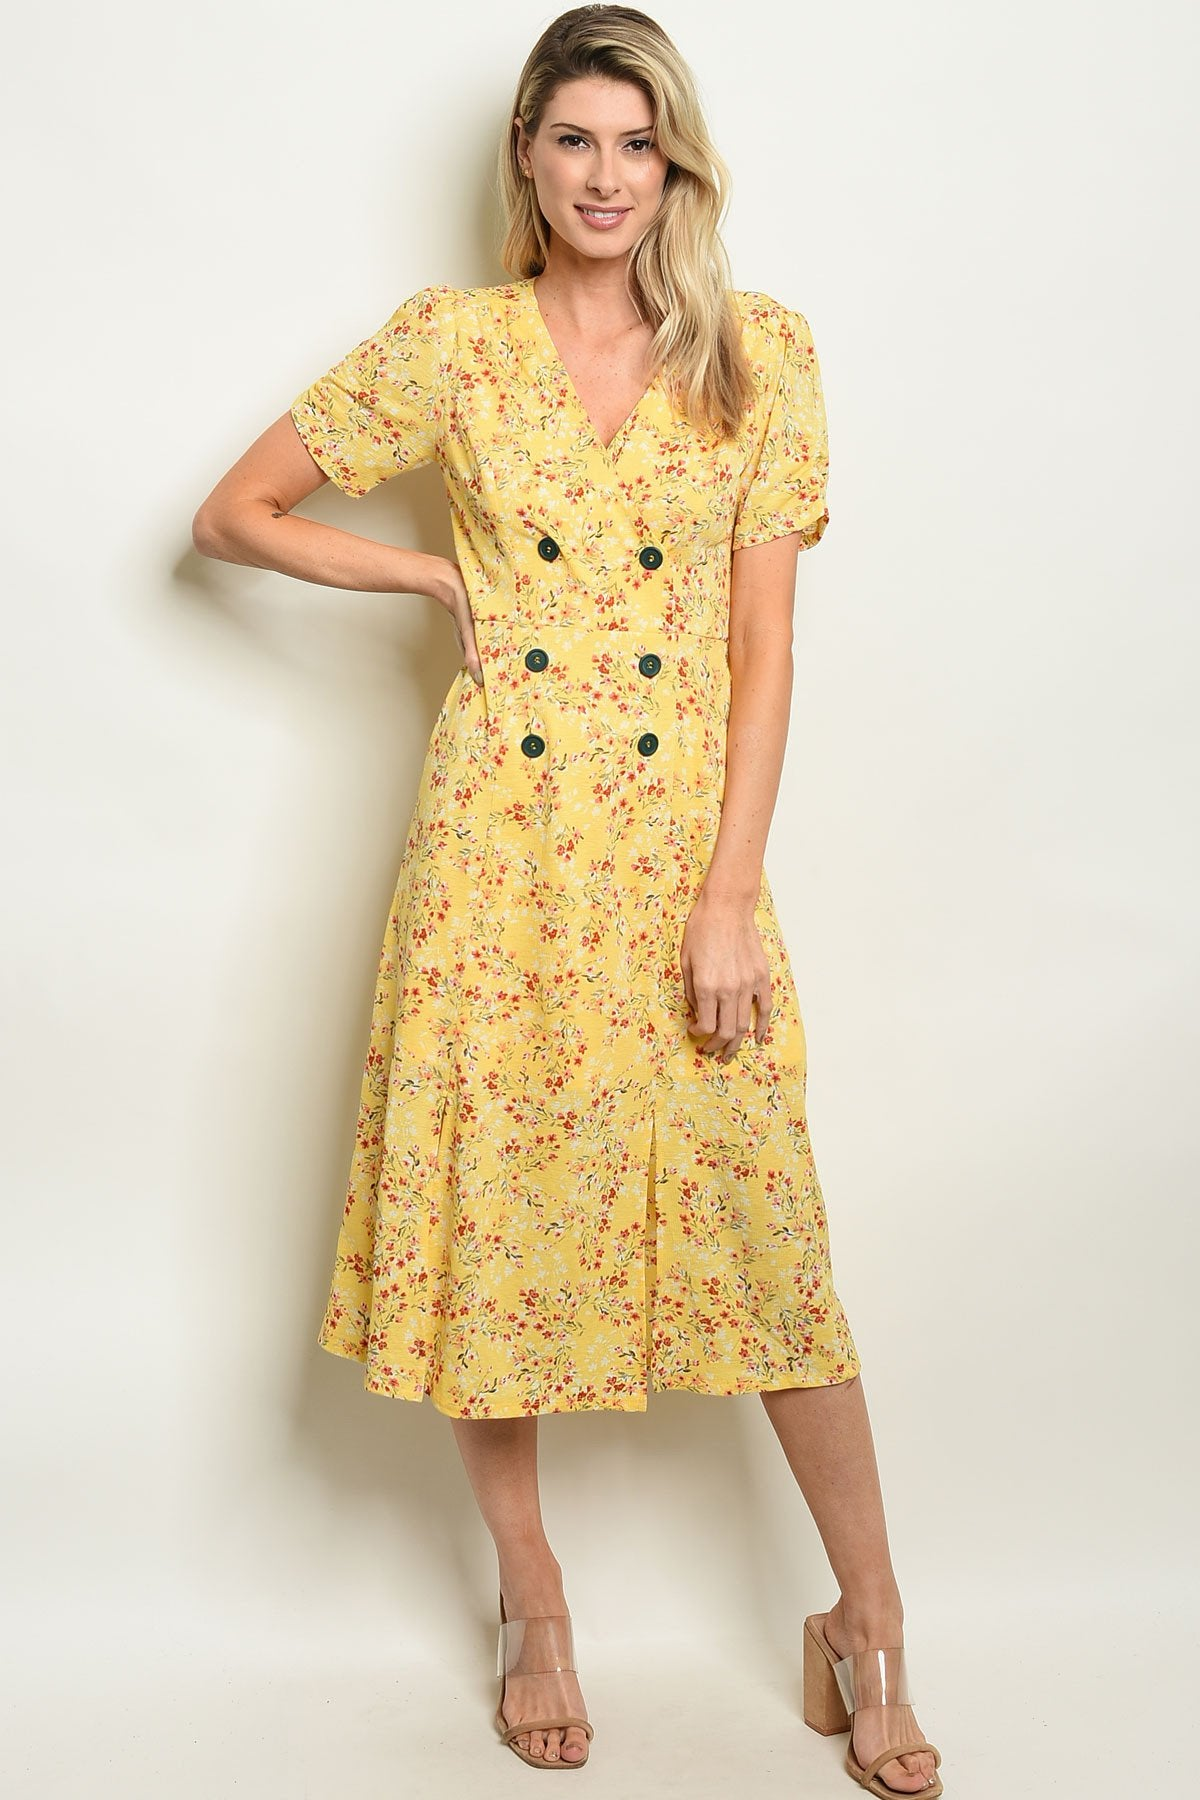 Yellow Floral Dress - Manifest Best Boutique